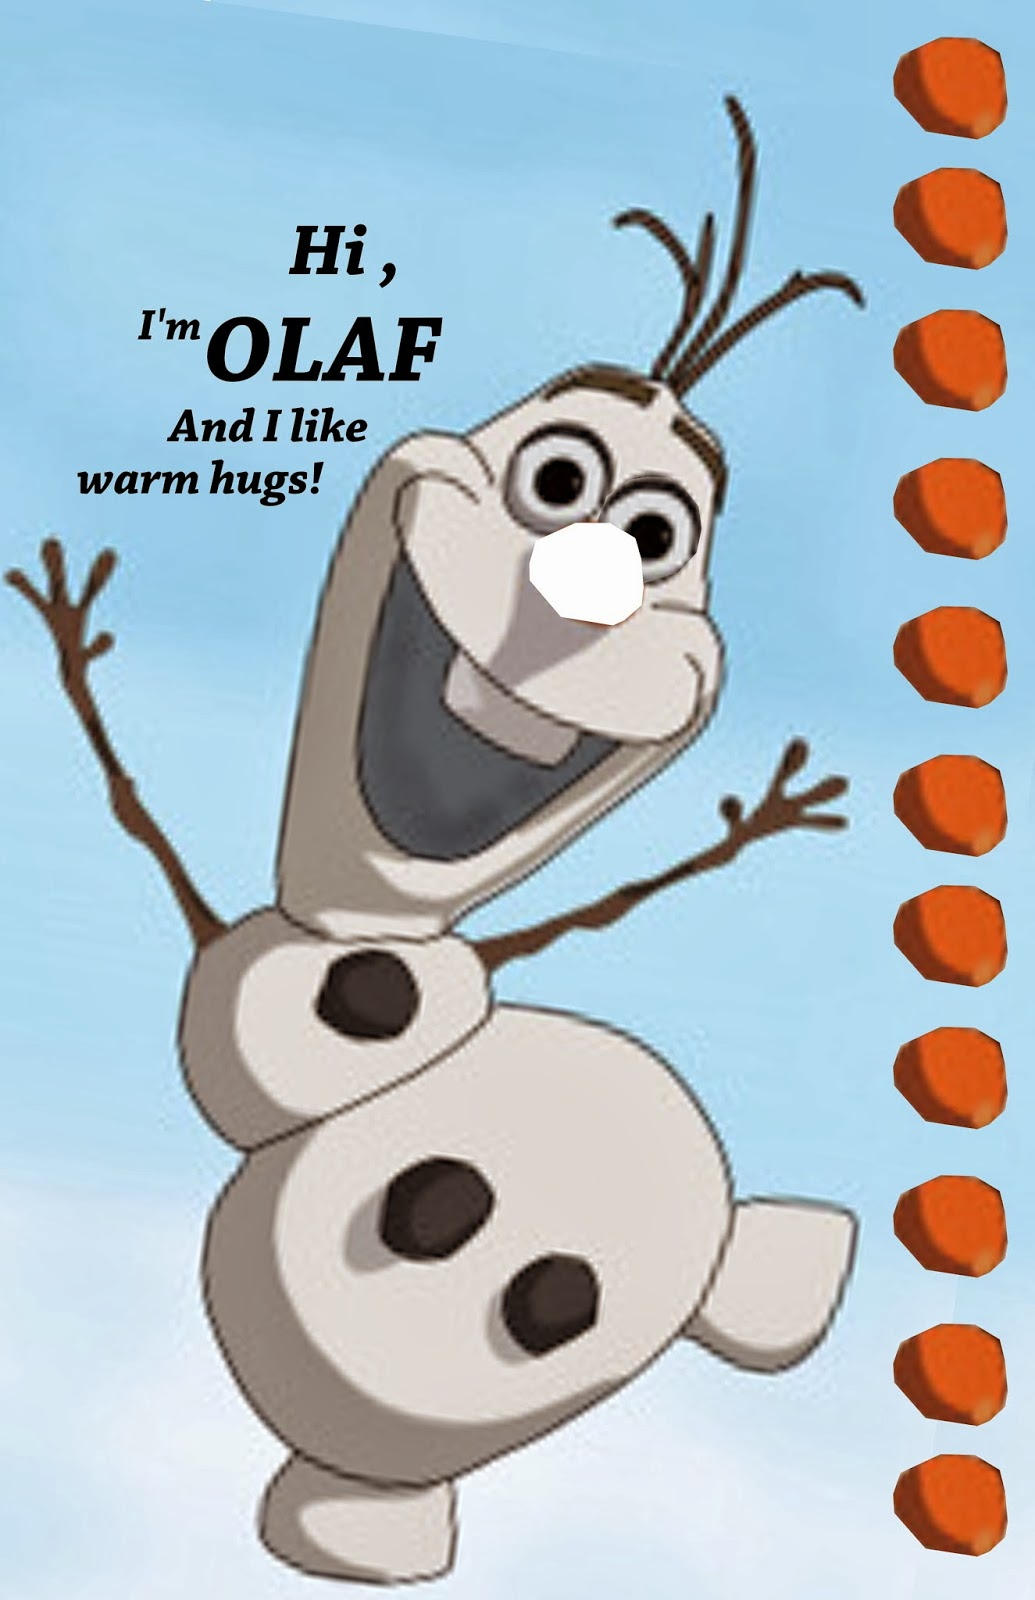 Party Inspired by Olaf 4: Pin the Nose on Olaf (Party Activity)